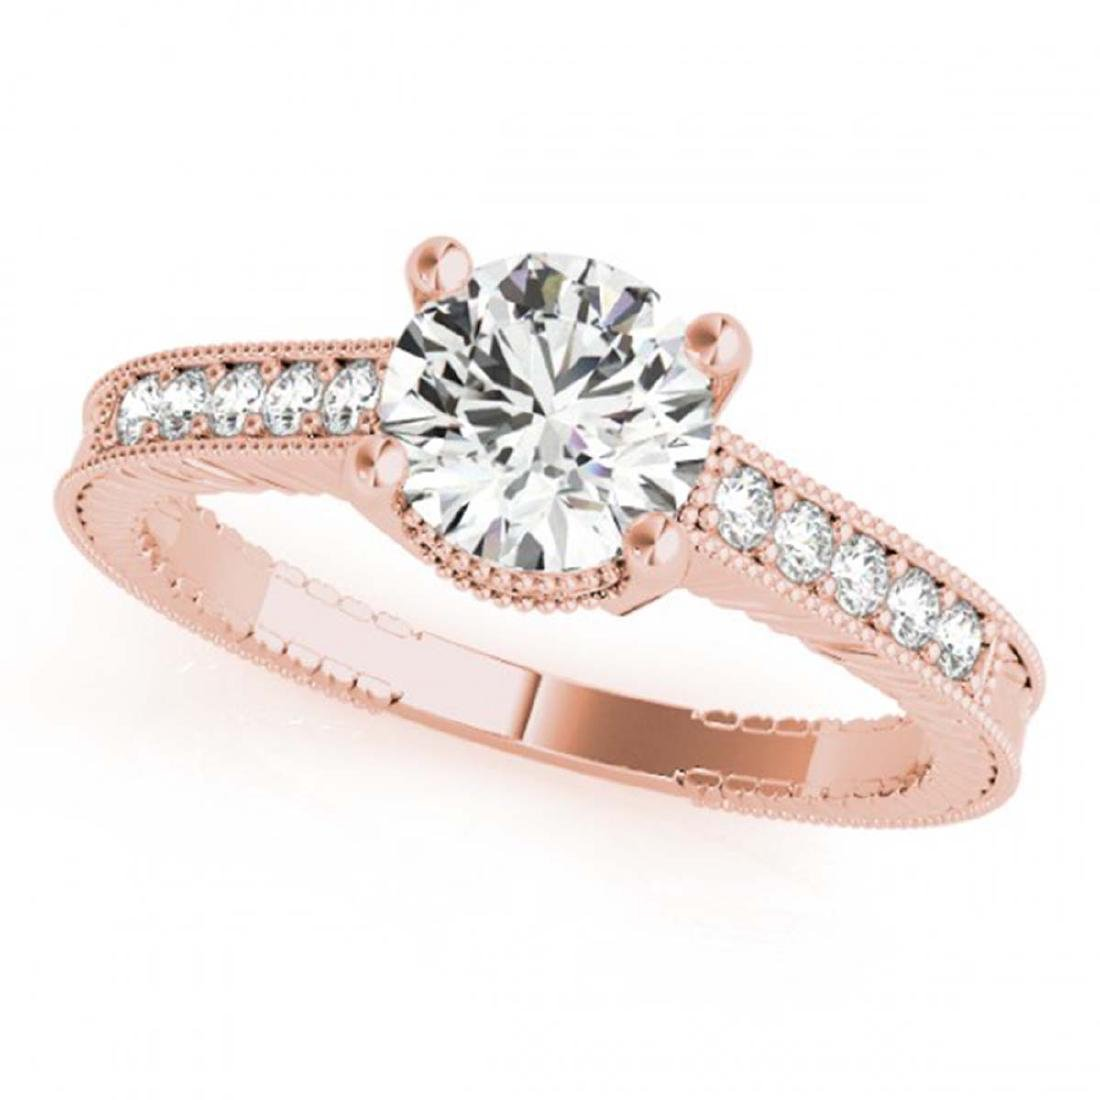 1.75 ctw VS/SI Diamond Ring 18K Rose Gold - REF-502A2V